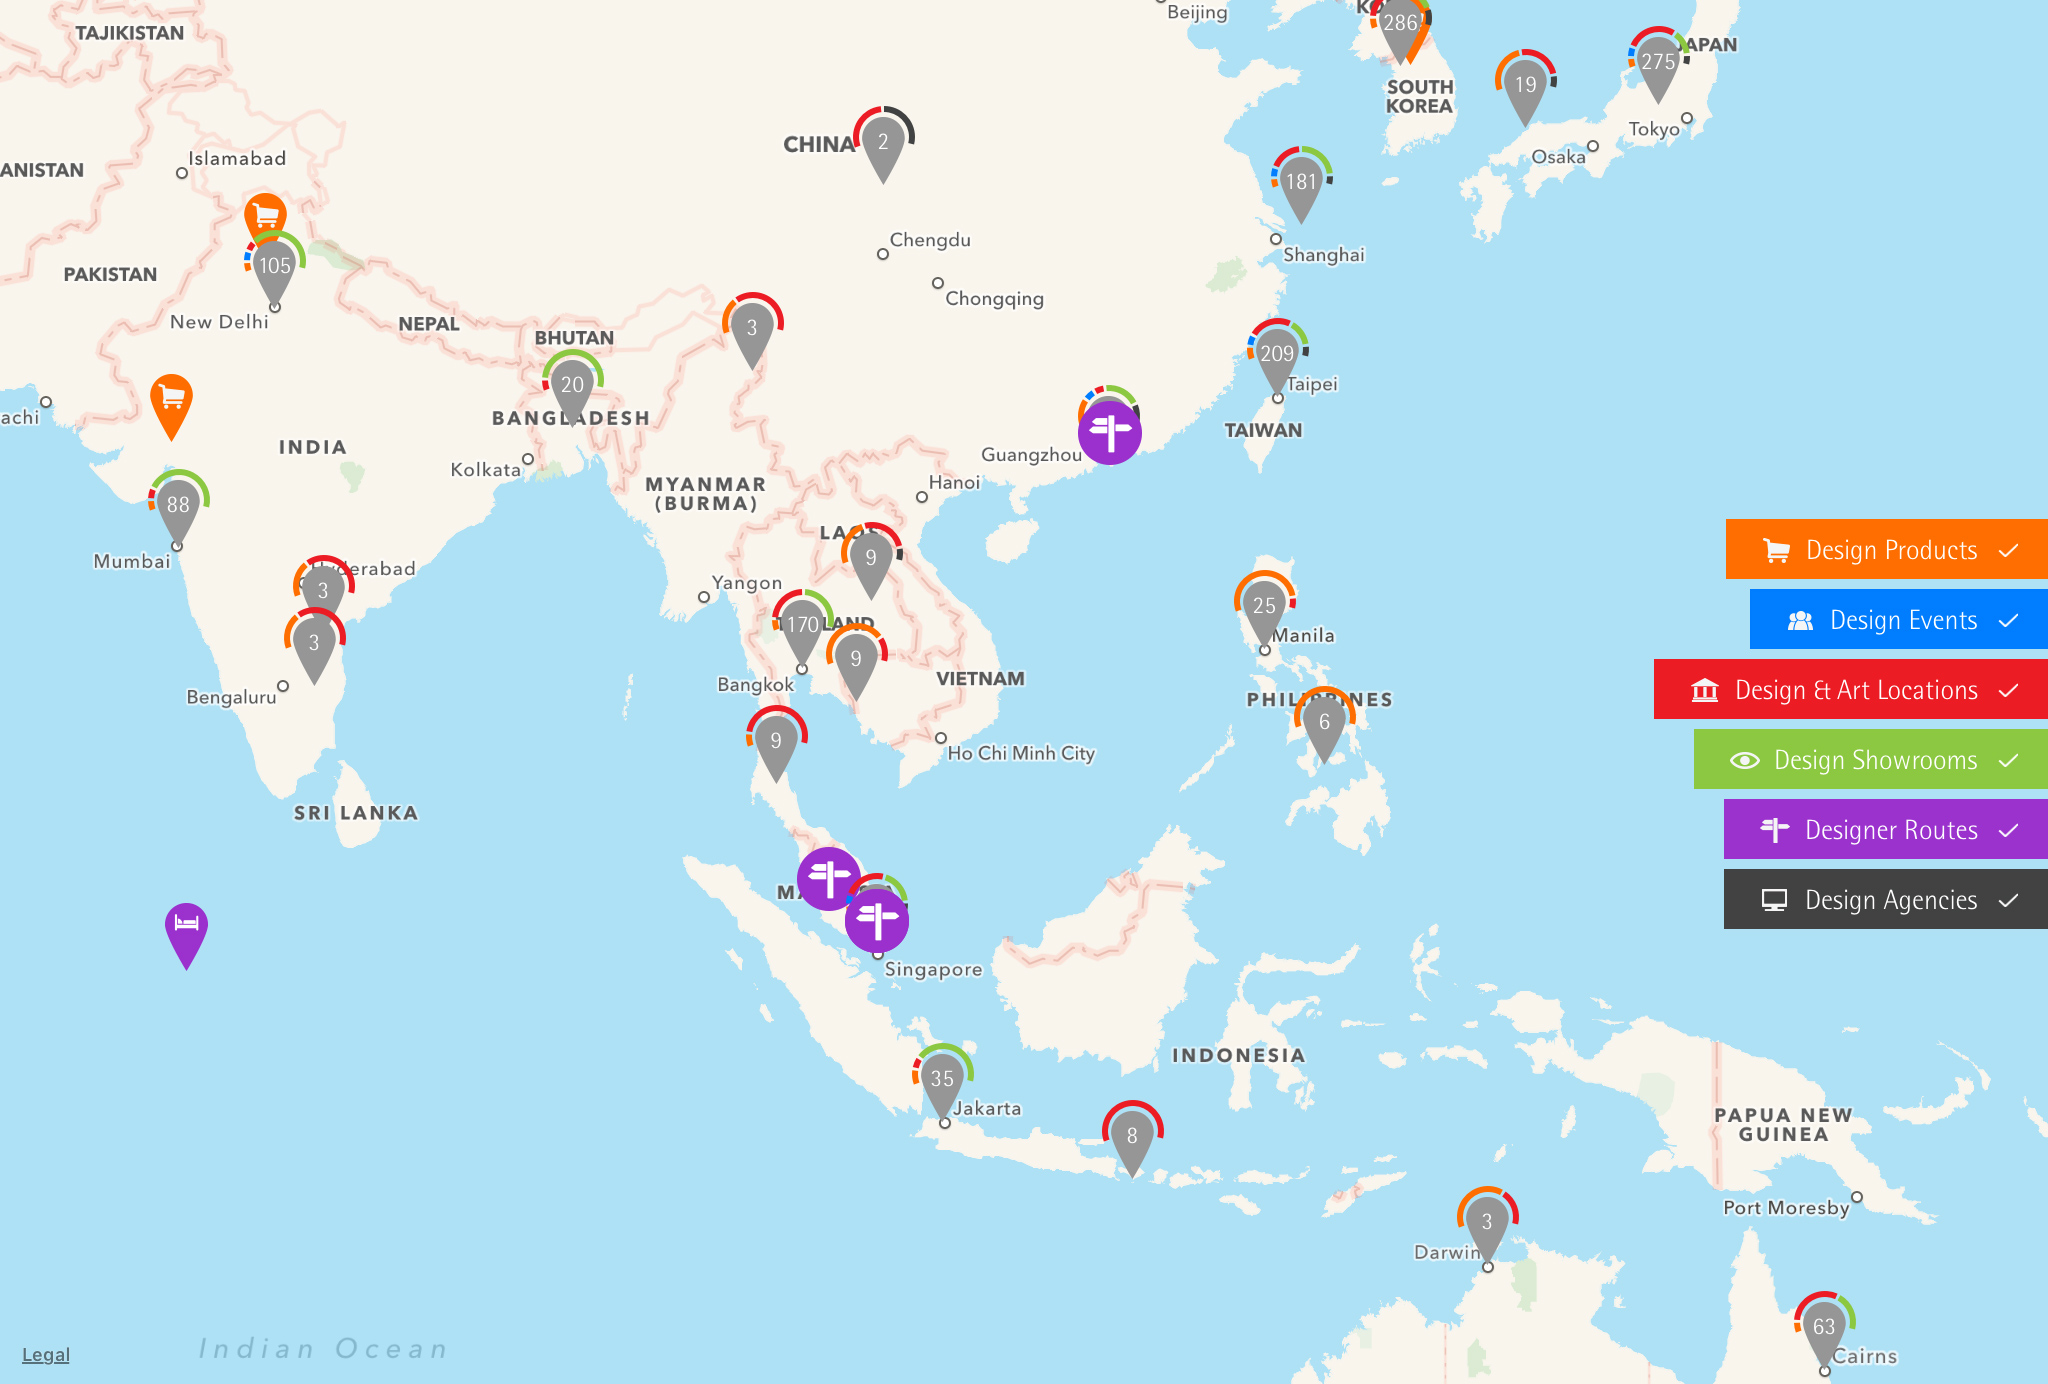 red dot maps design locations asien